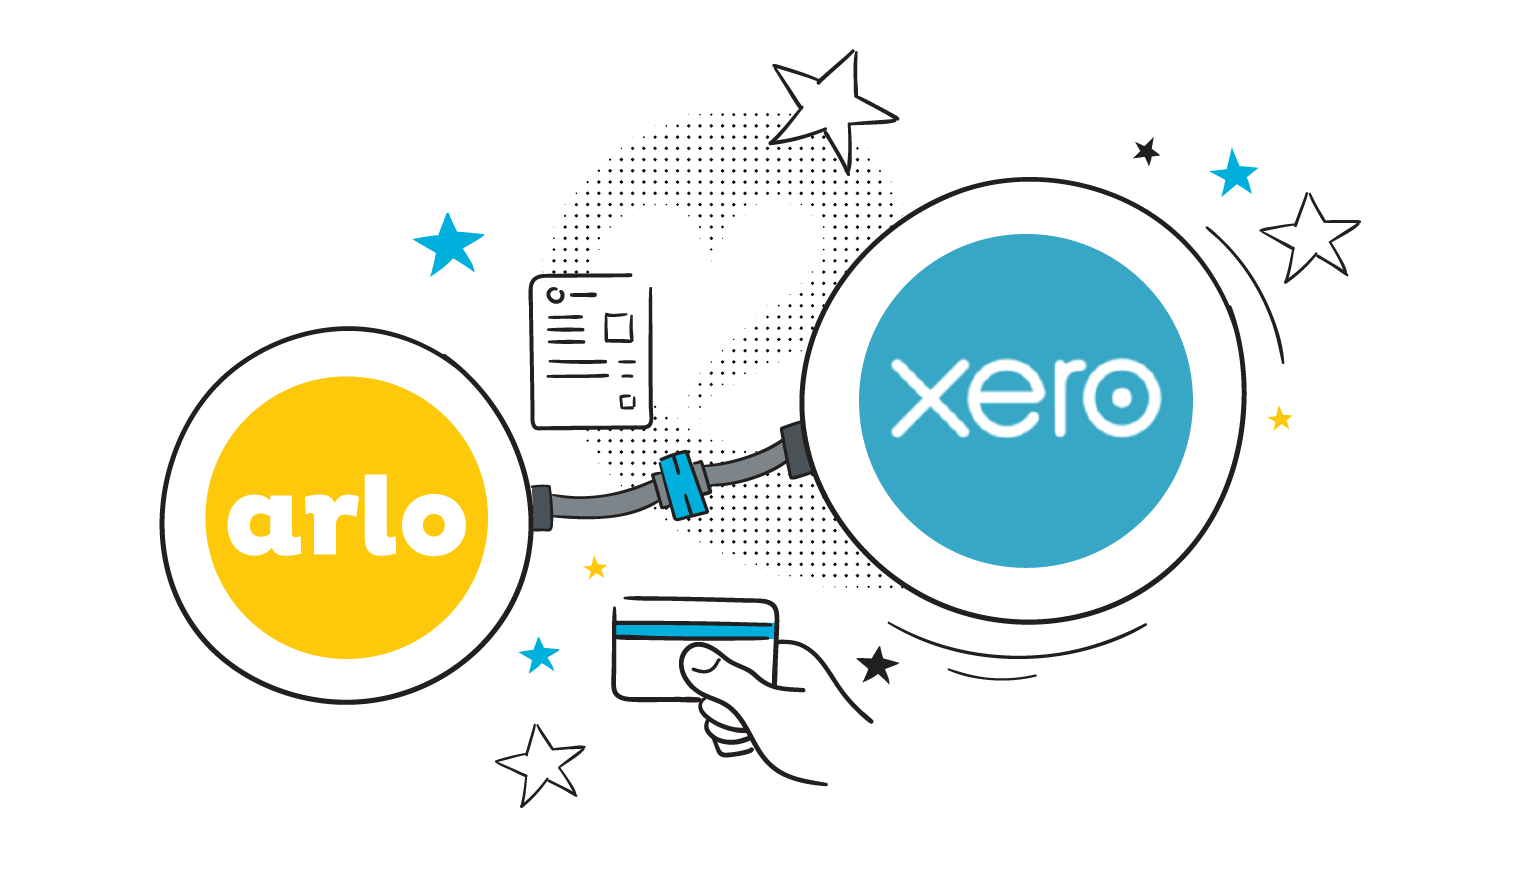 Xero Event Management Plugin | Arlo Training Software